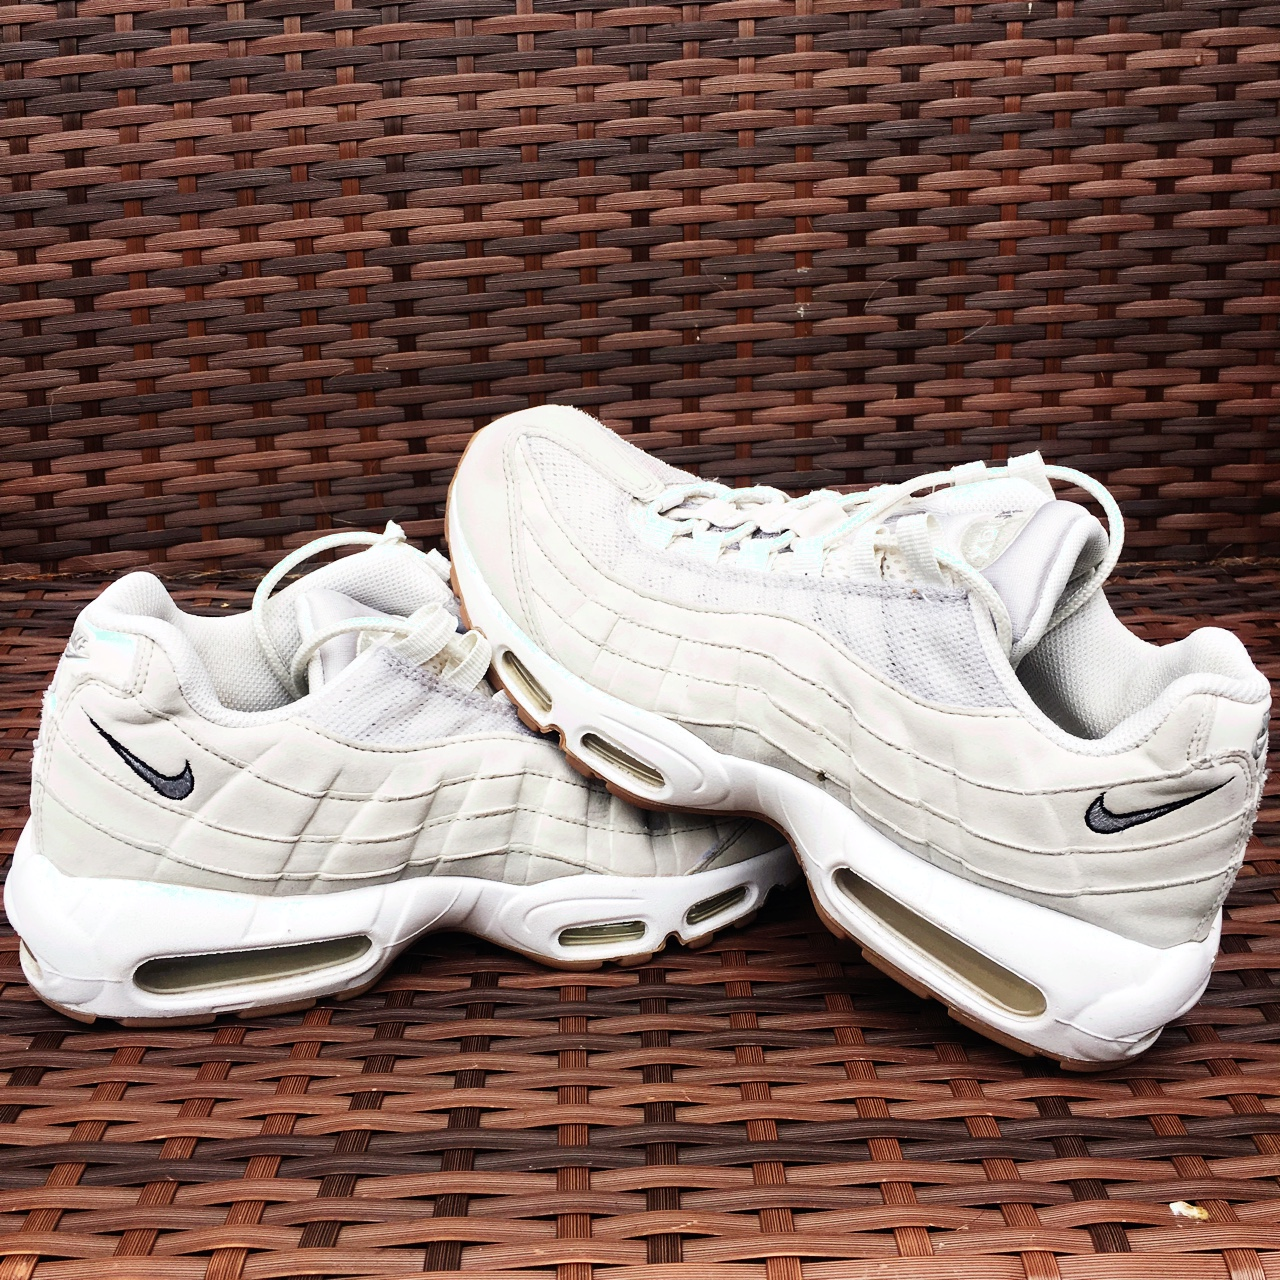 on sale fd523 a0b06 Nike air max 95s. Size 8. Cream suede and white... - Depop